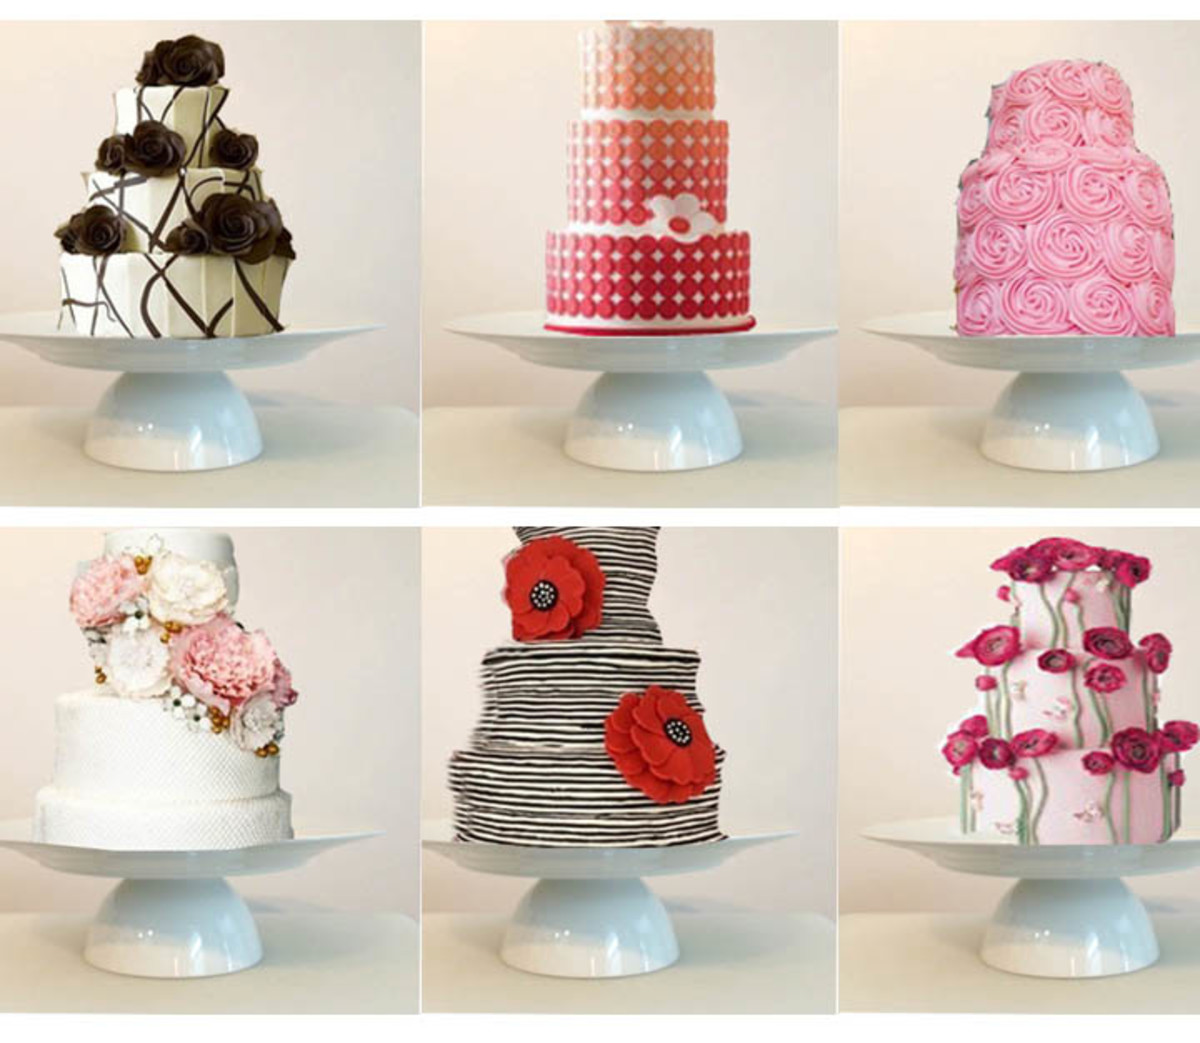 When you make your own cake stand you'll save lots of money-spend the money you saved either making or buying an amazing cake!